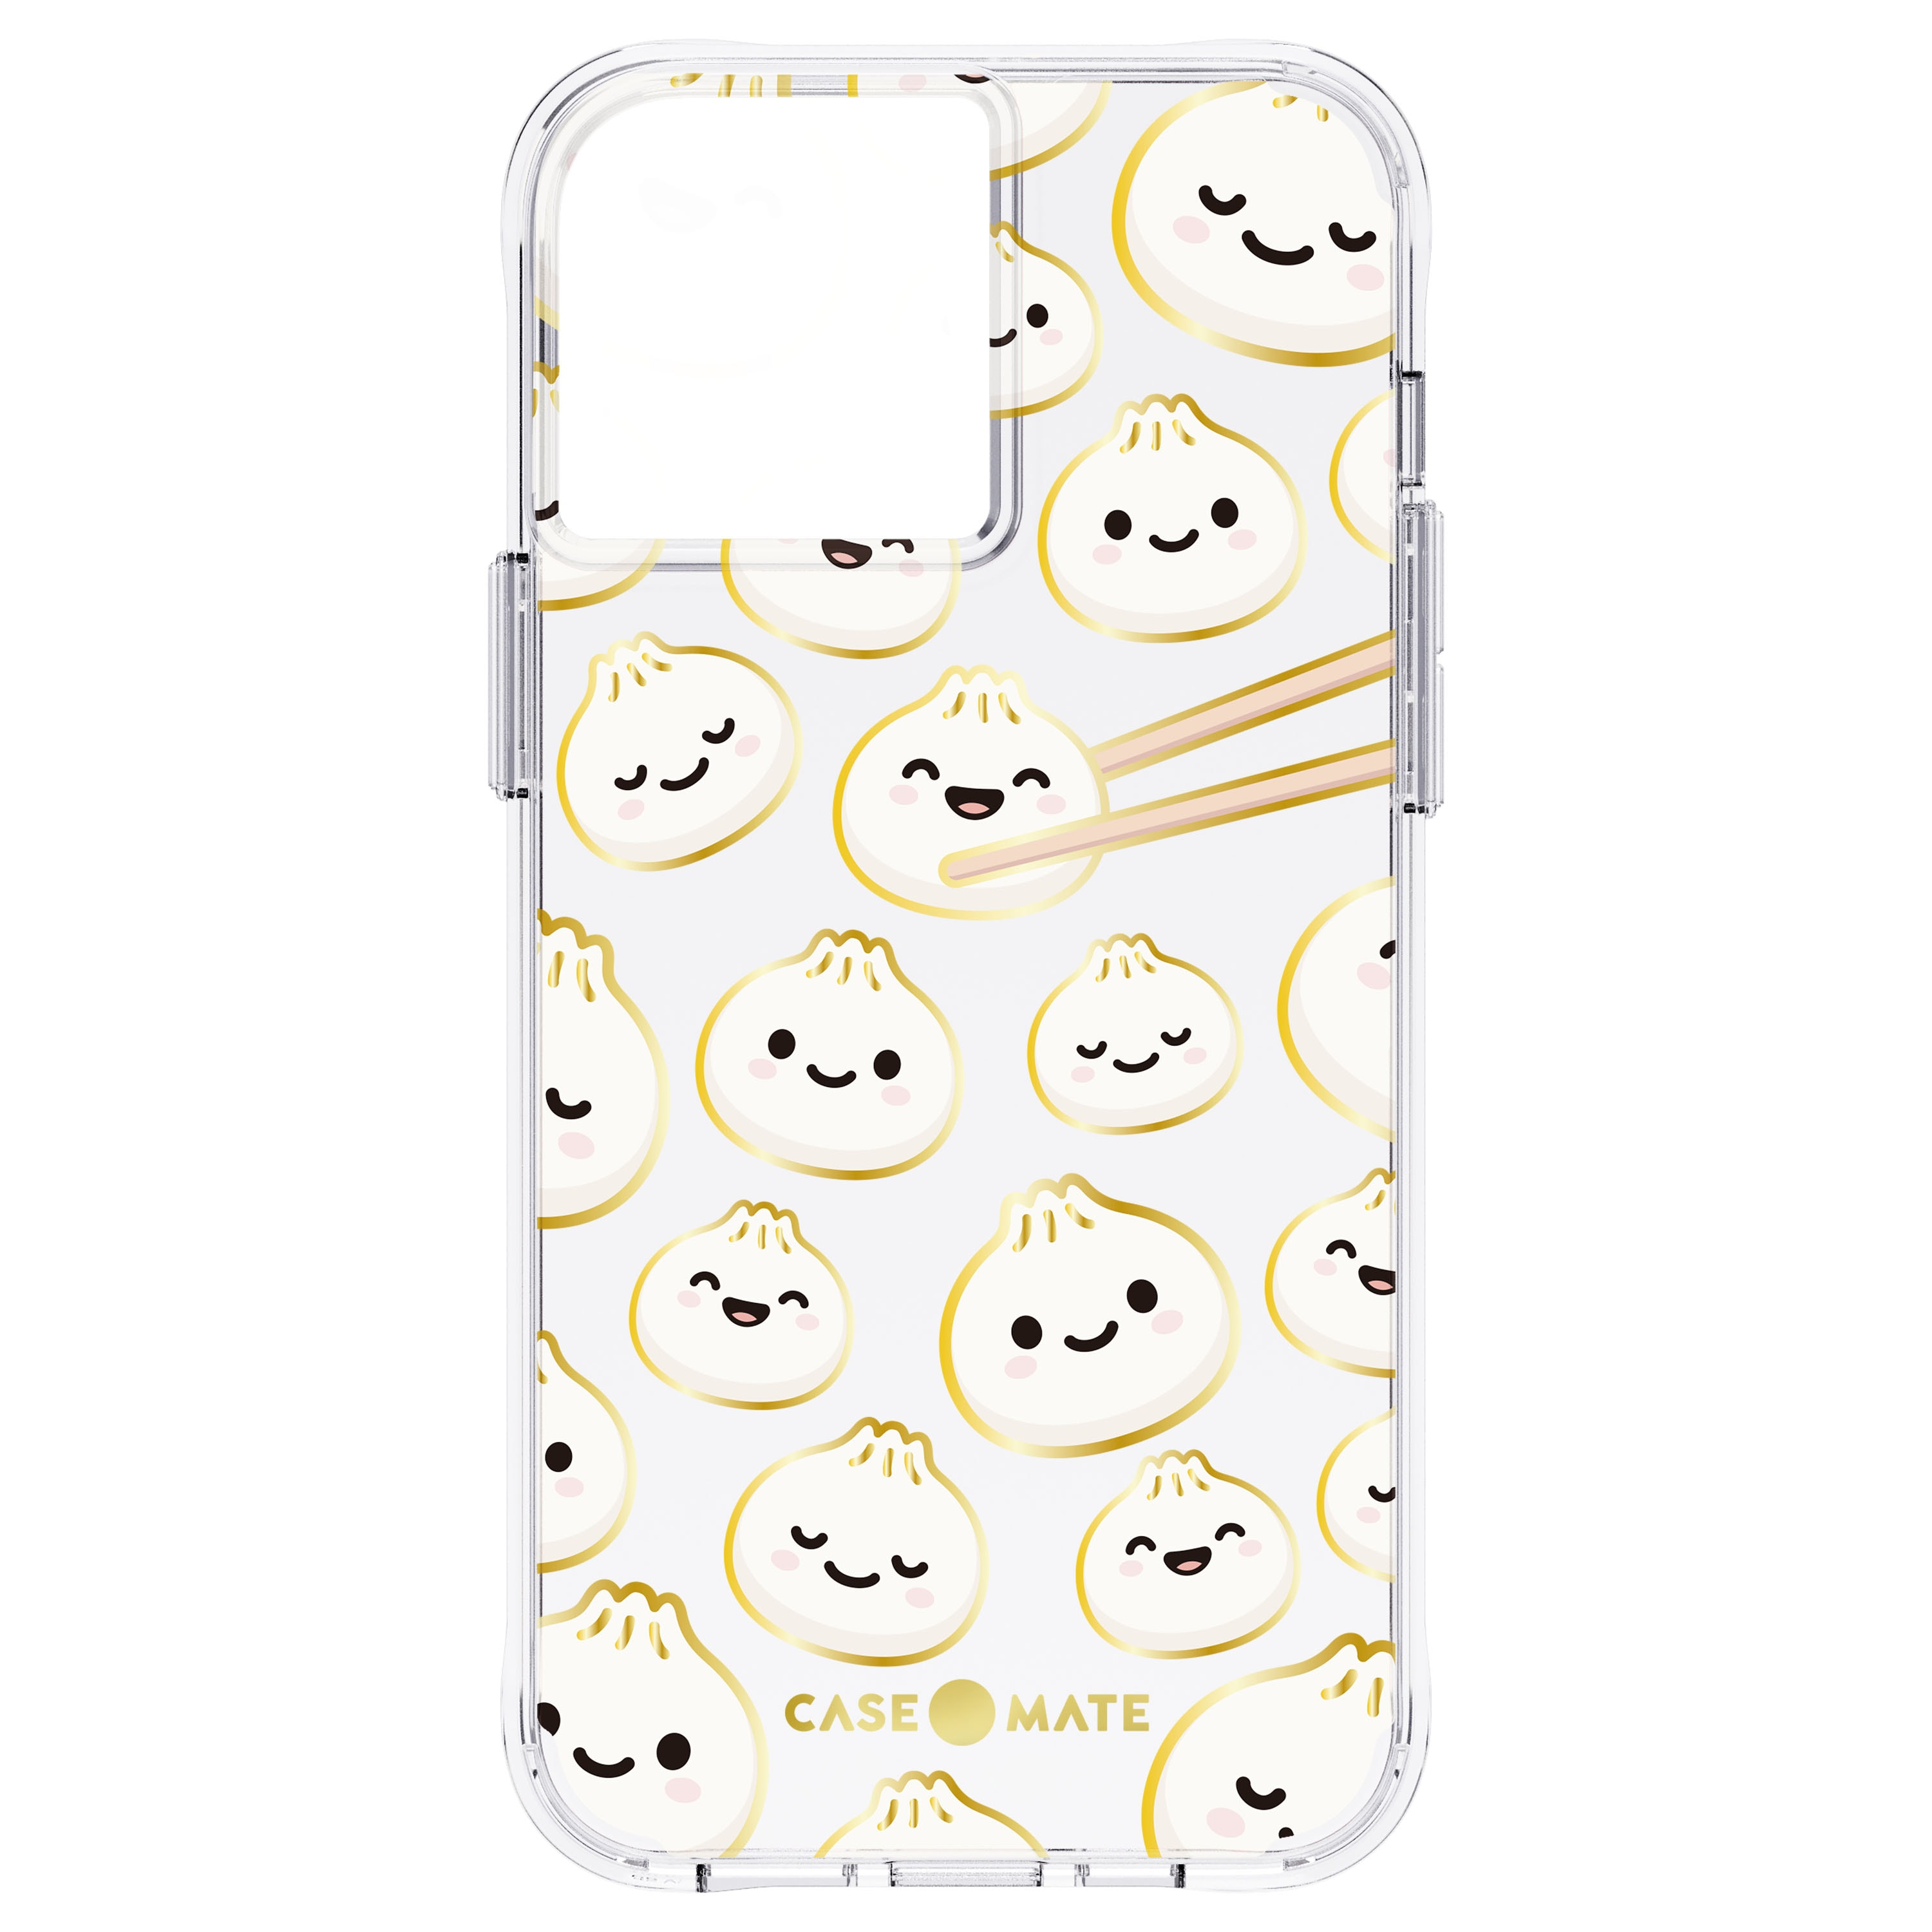 Cute as a Dumpling iPhone 13 case giveaway: This super-cute case will get so much attention